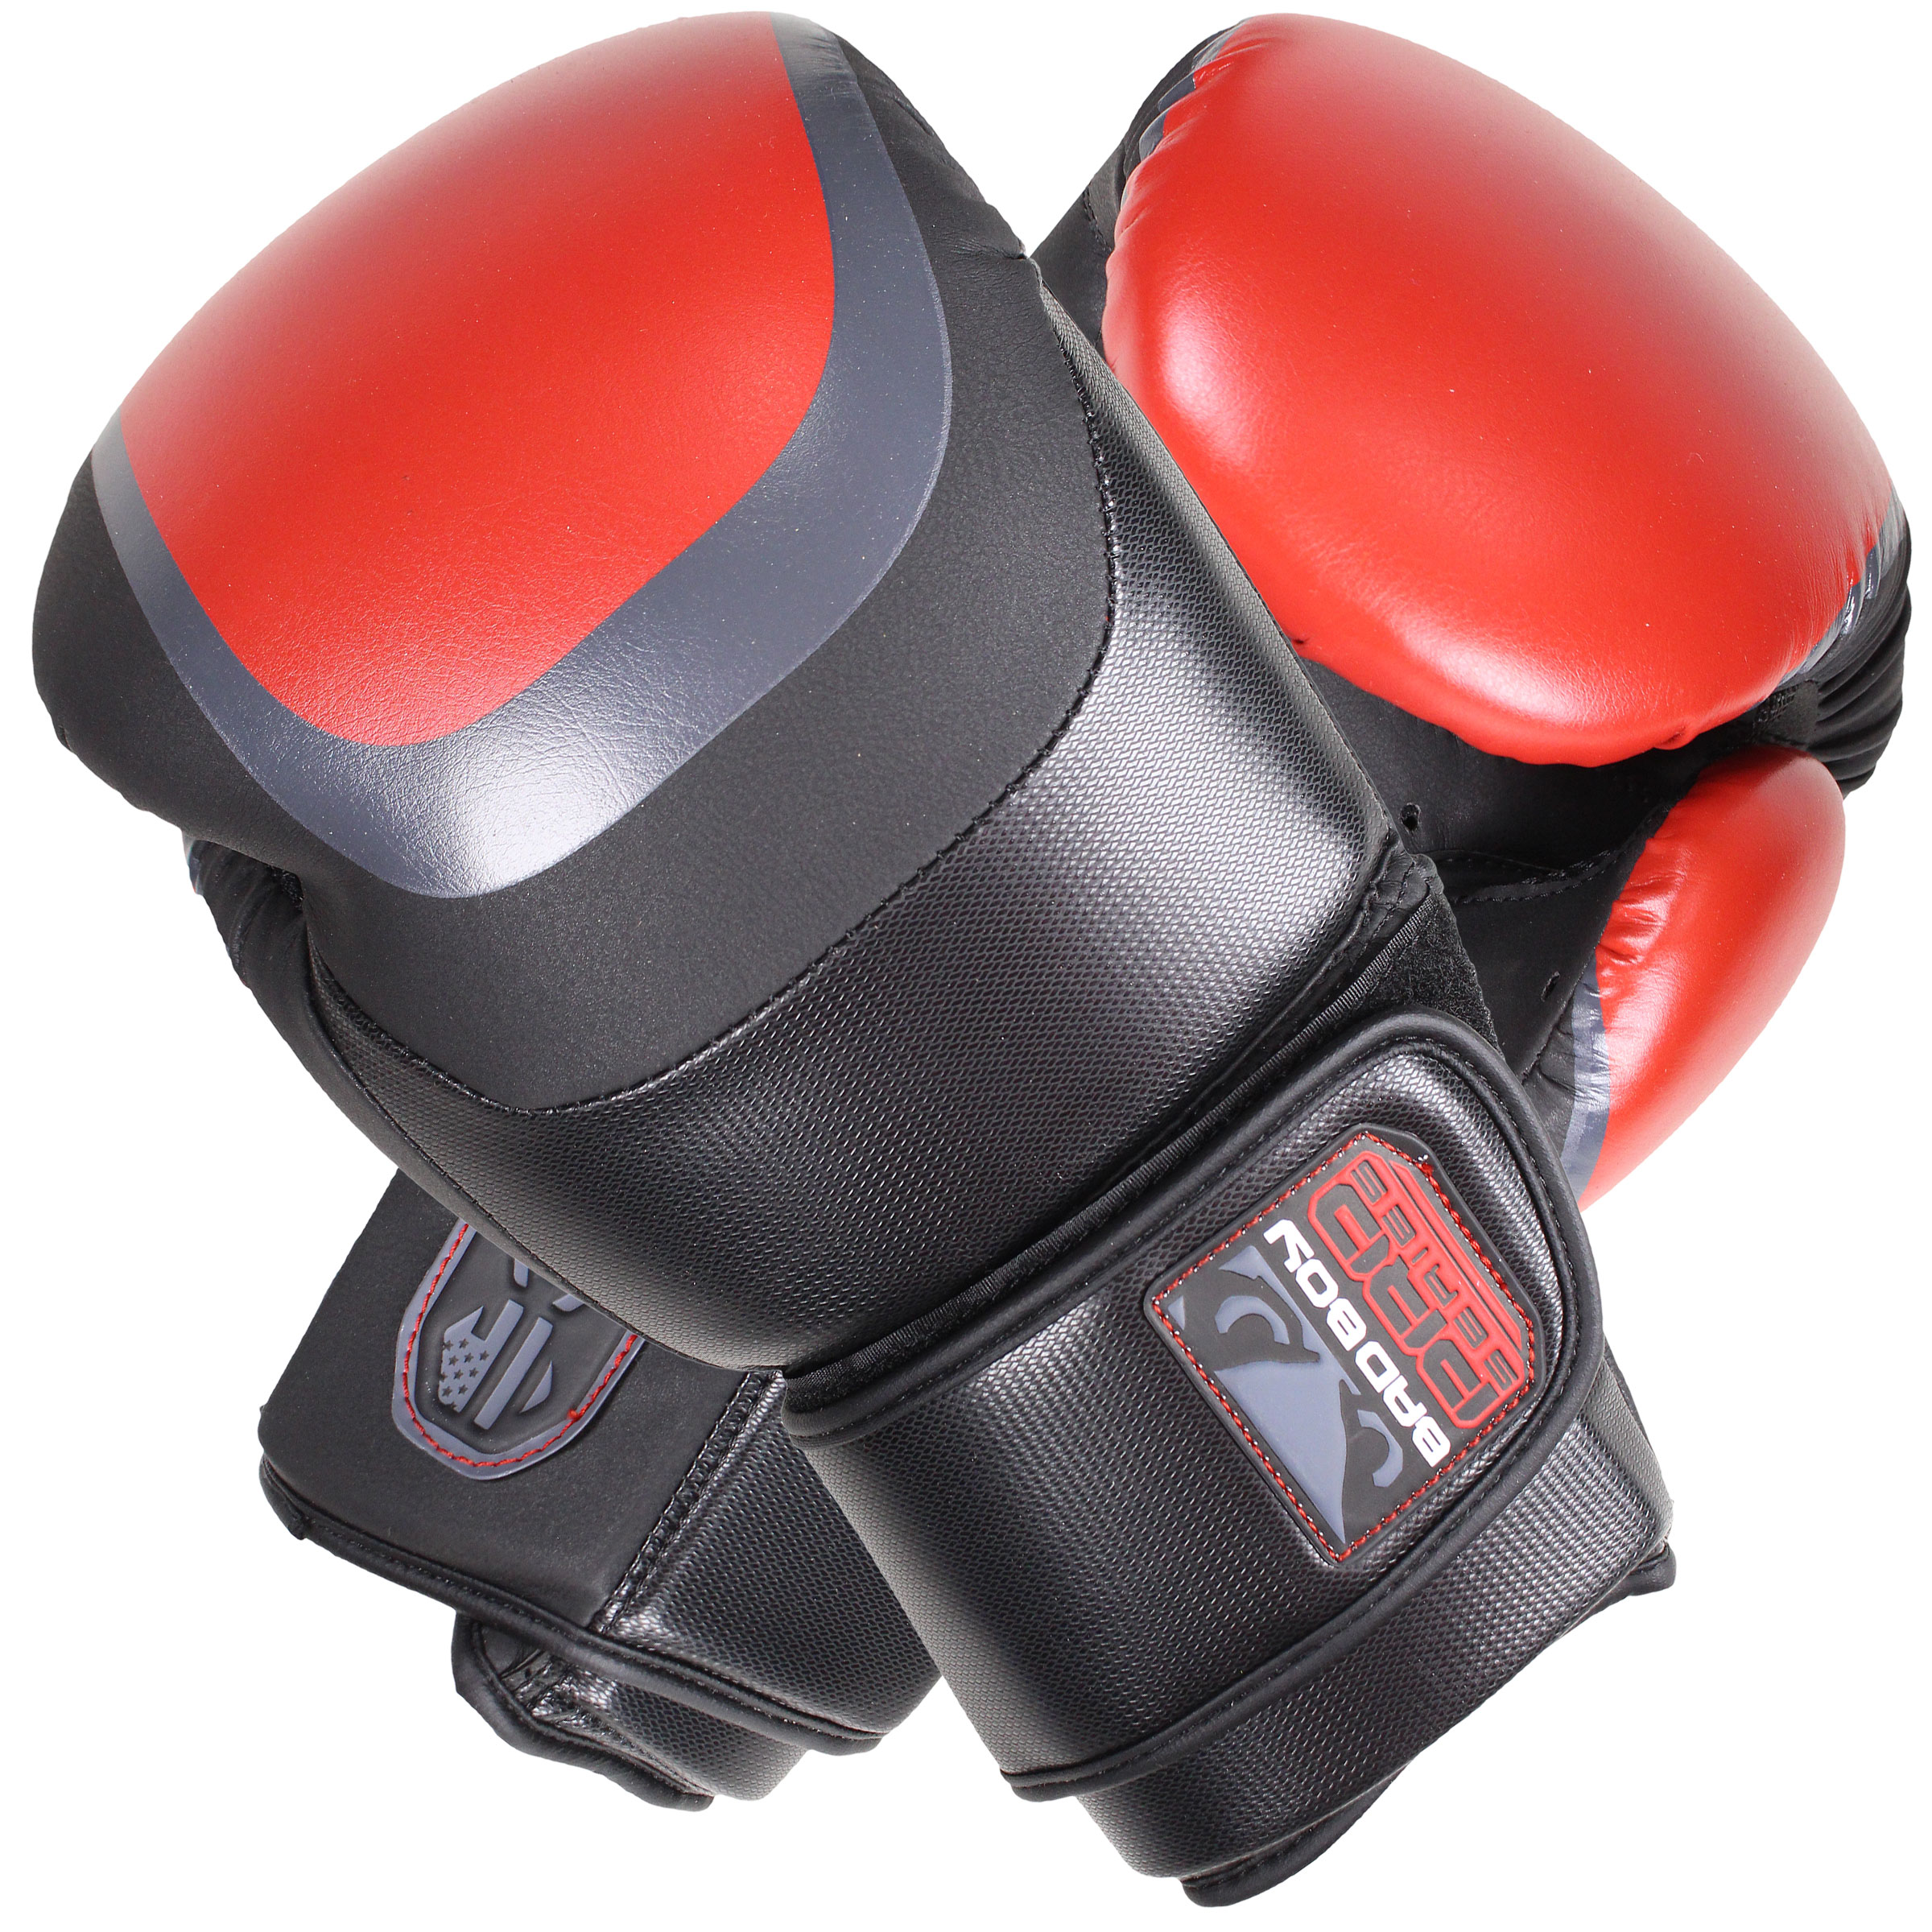 Bad Boy Pro Series 3.0 Boxing Gloves (Exclusive)